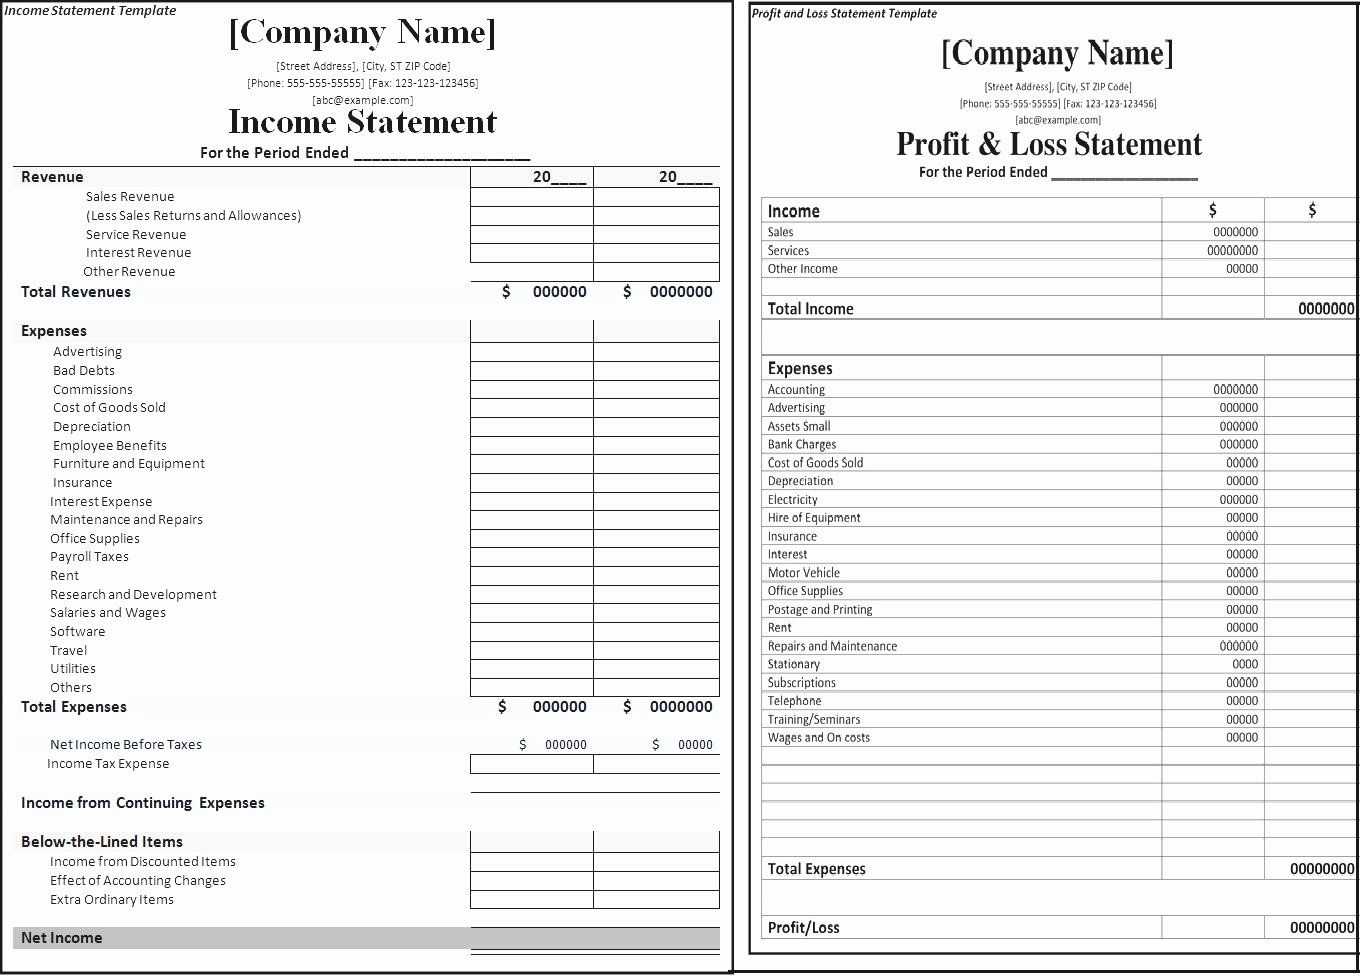 Blank Income Statement Template Best Of Blank Profit And Loss Statement Mughals Statement Template Income Statement Template Mission Statement Template